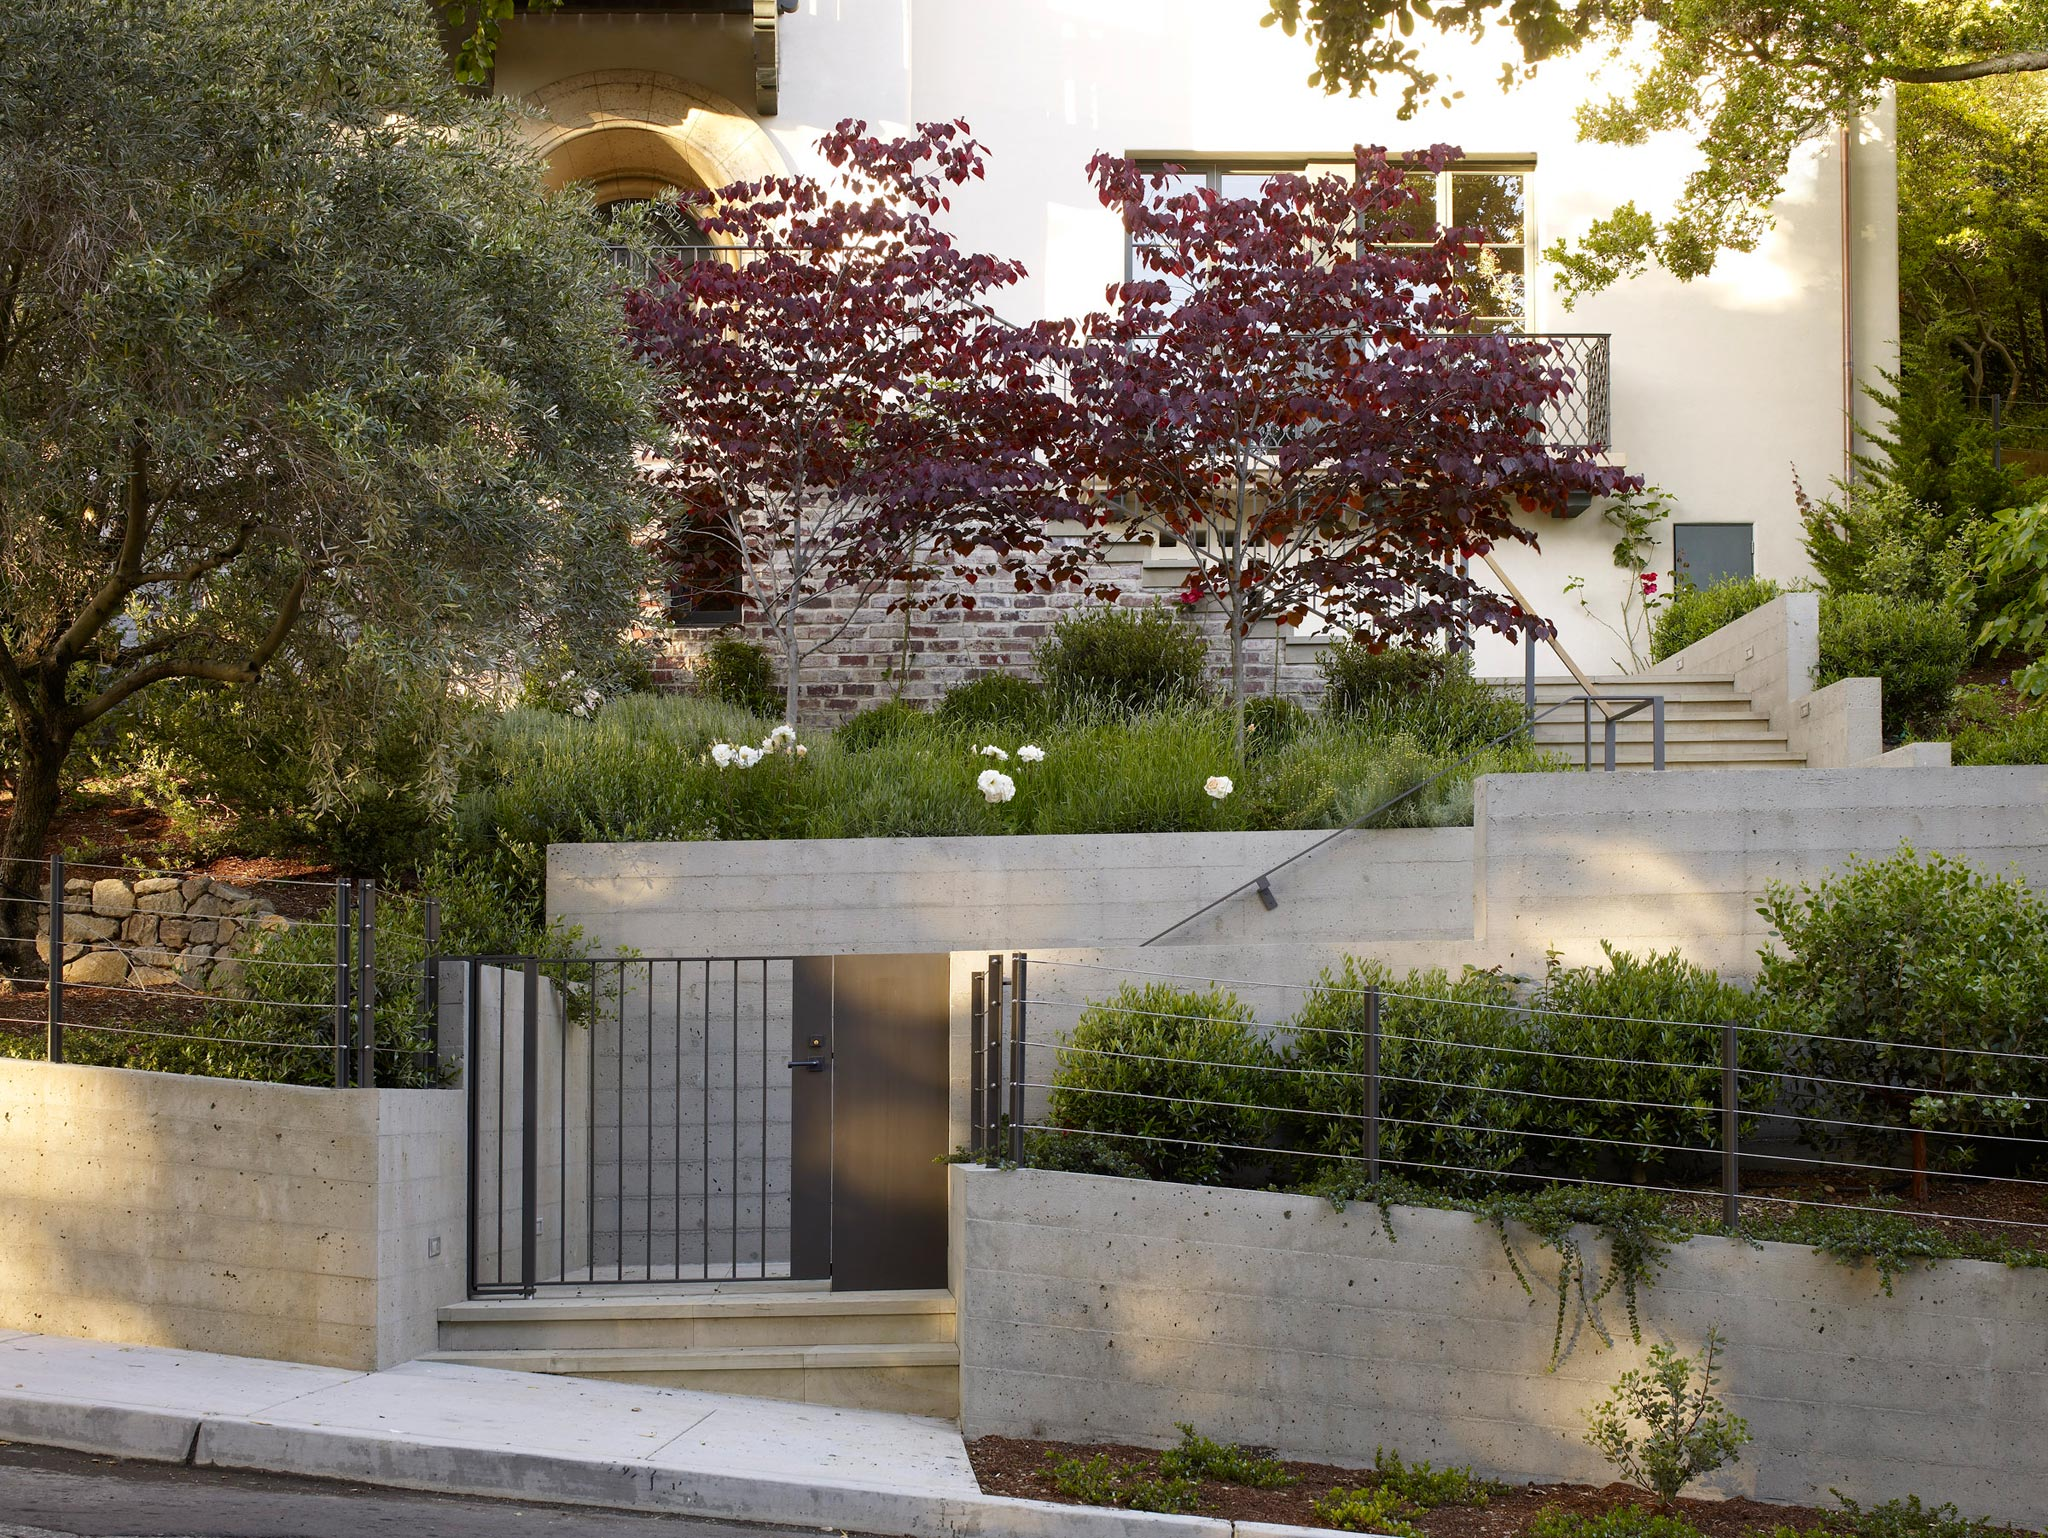 Claremont modern aesthetic pavillon house exterior view of front gate